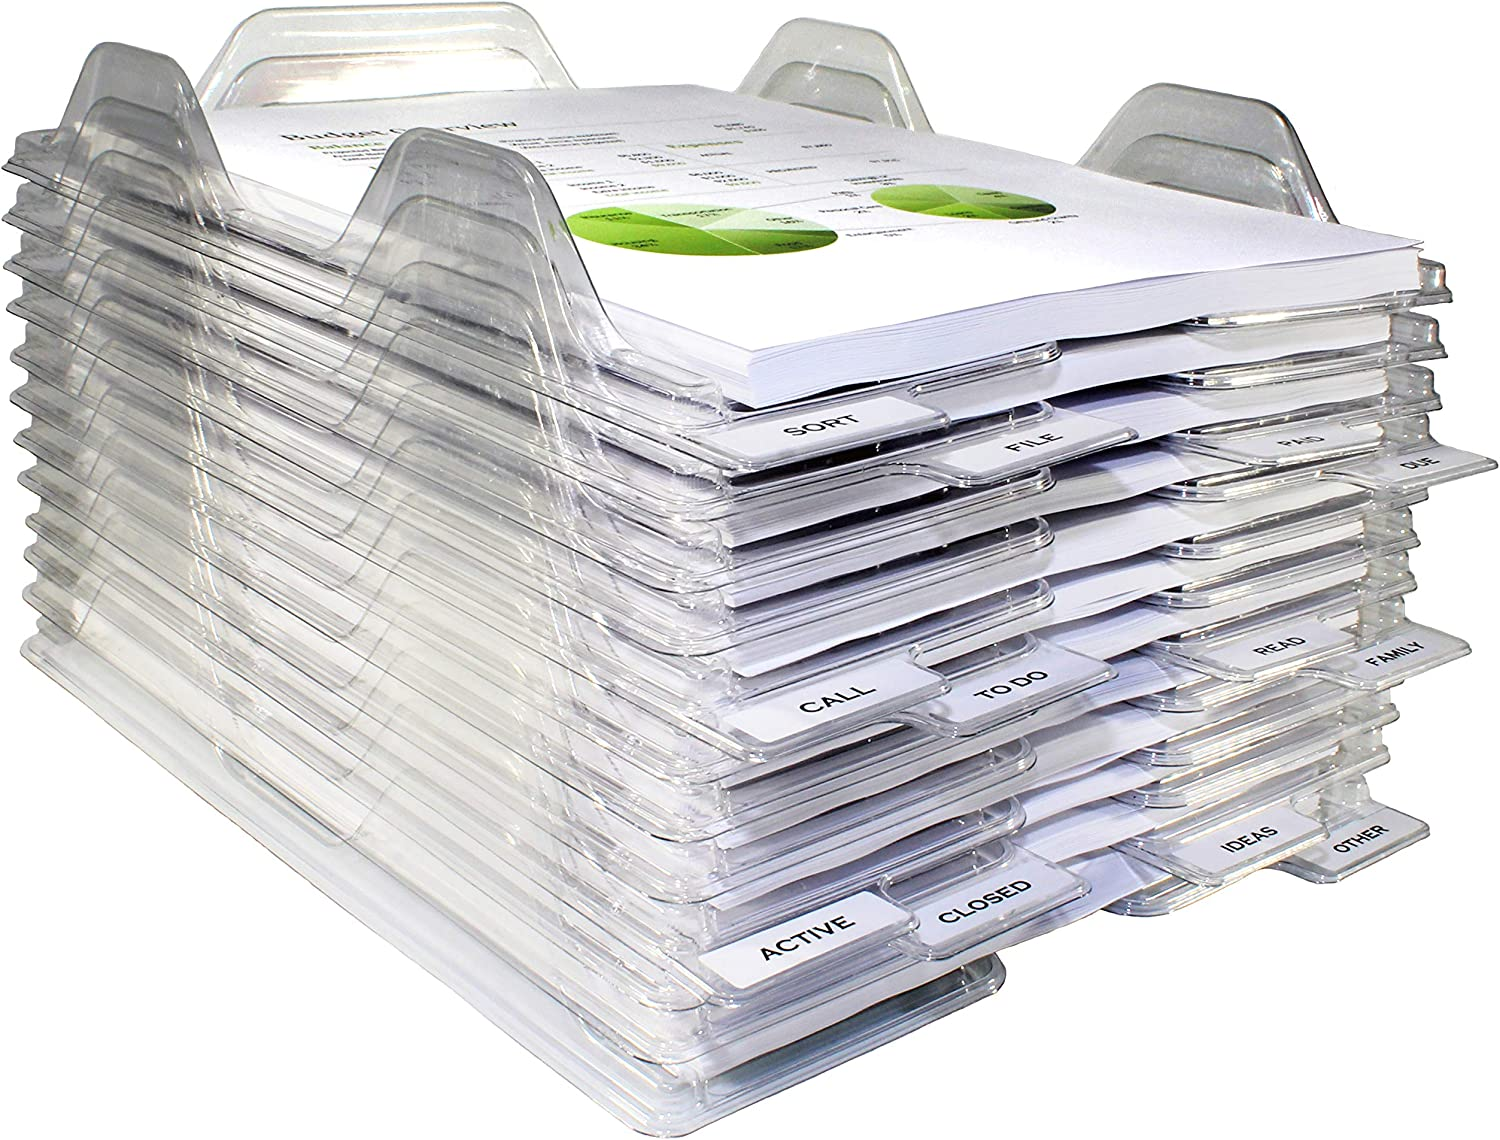 EZSTAX File Organizers - Letter Size, Stackable Trays for Desk - for Office Files, Mail, Documents - 24 Pack